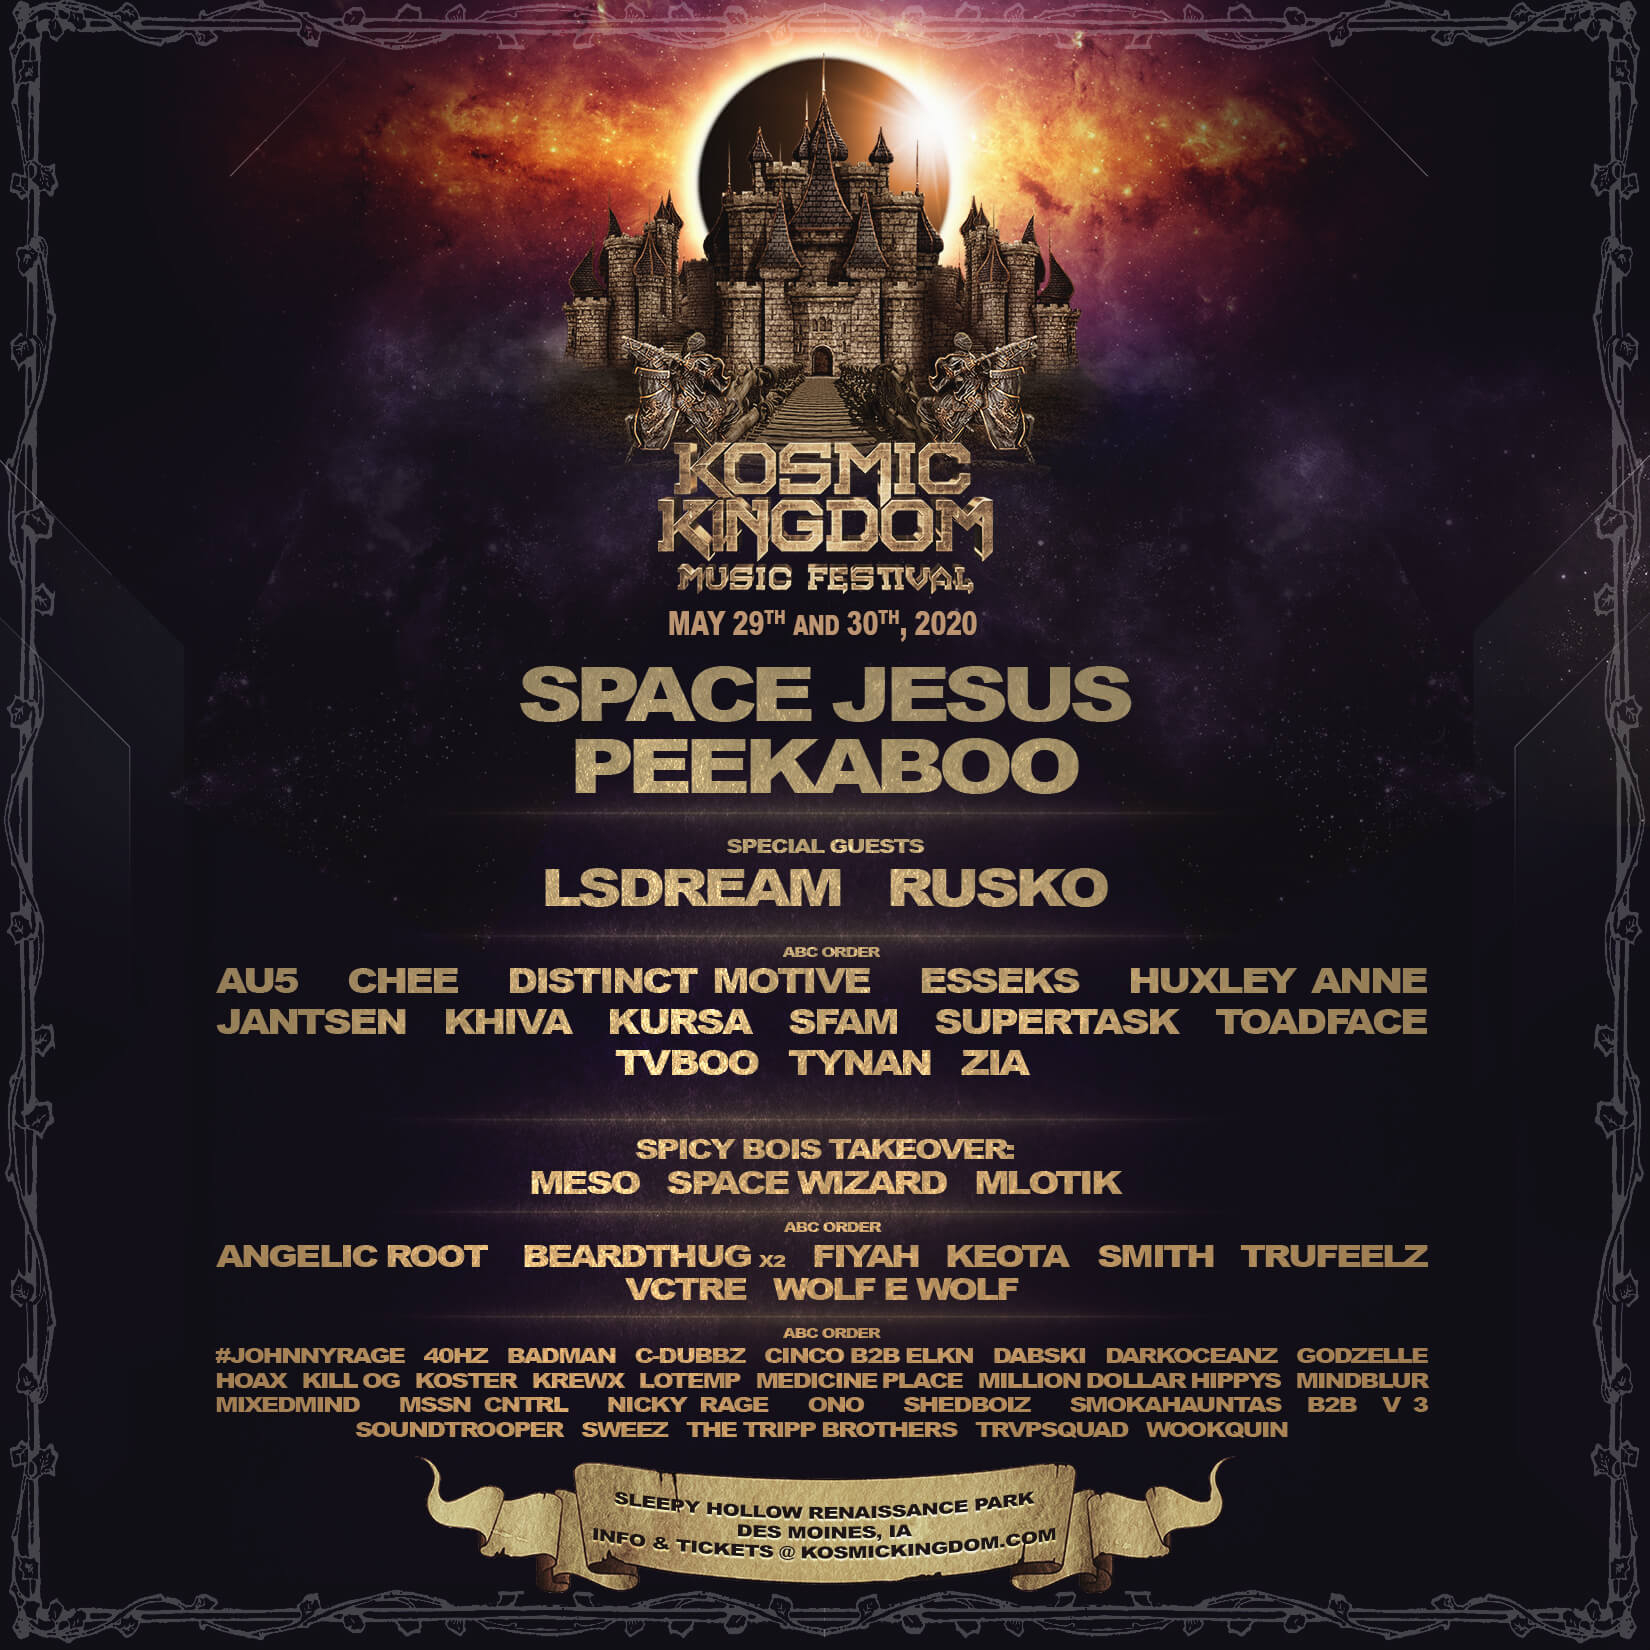 Kosmic Kingdom Music Festival 2020 Lineup